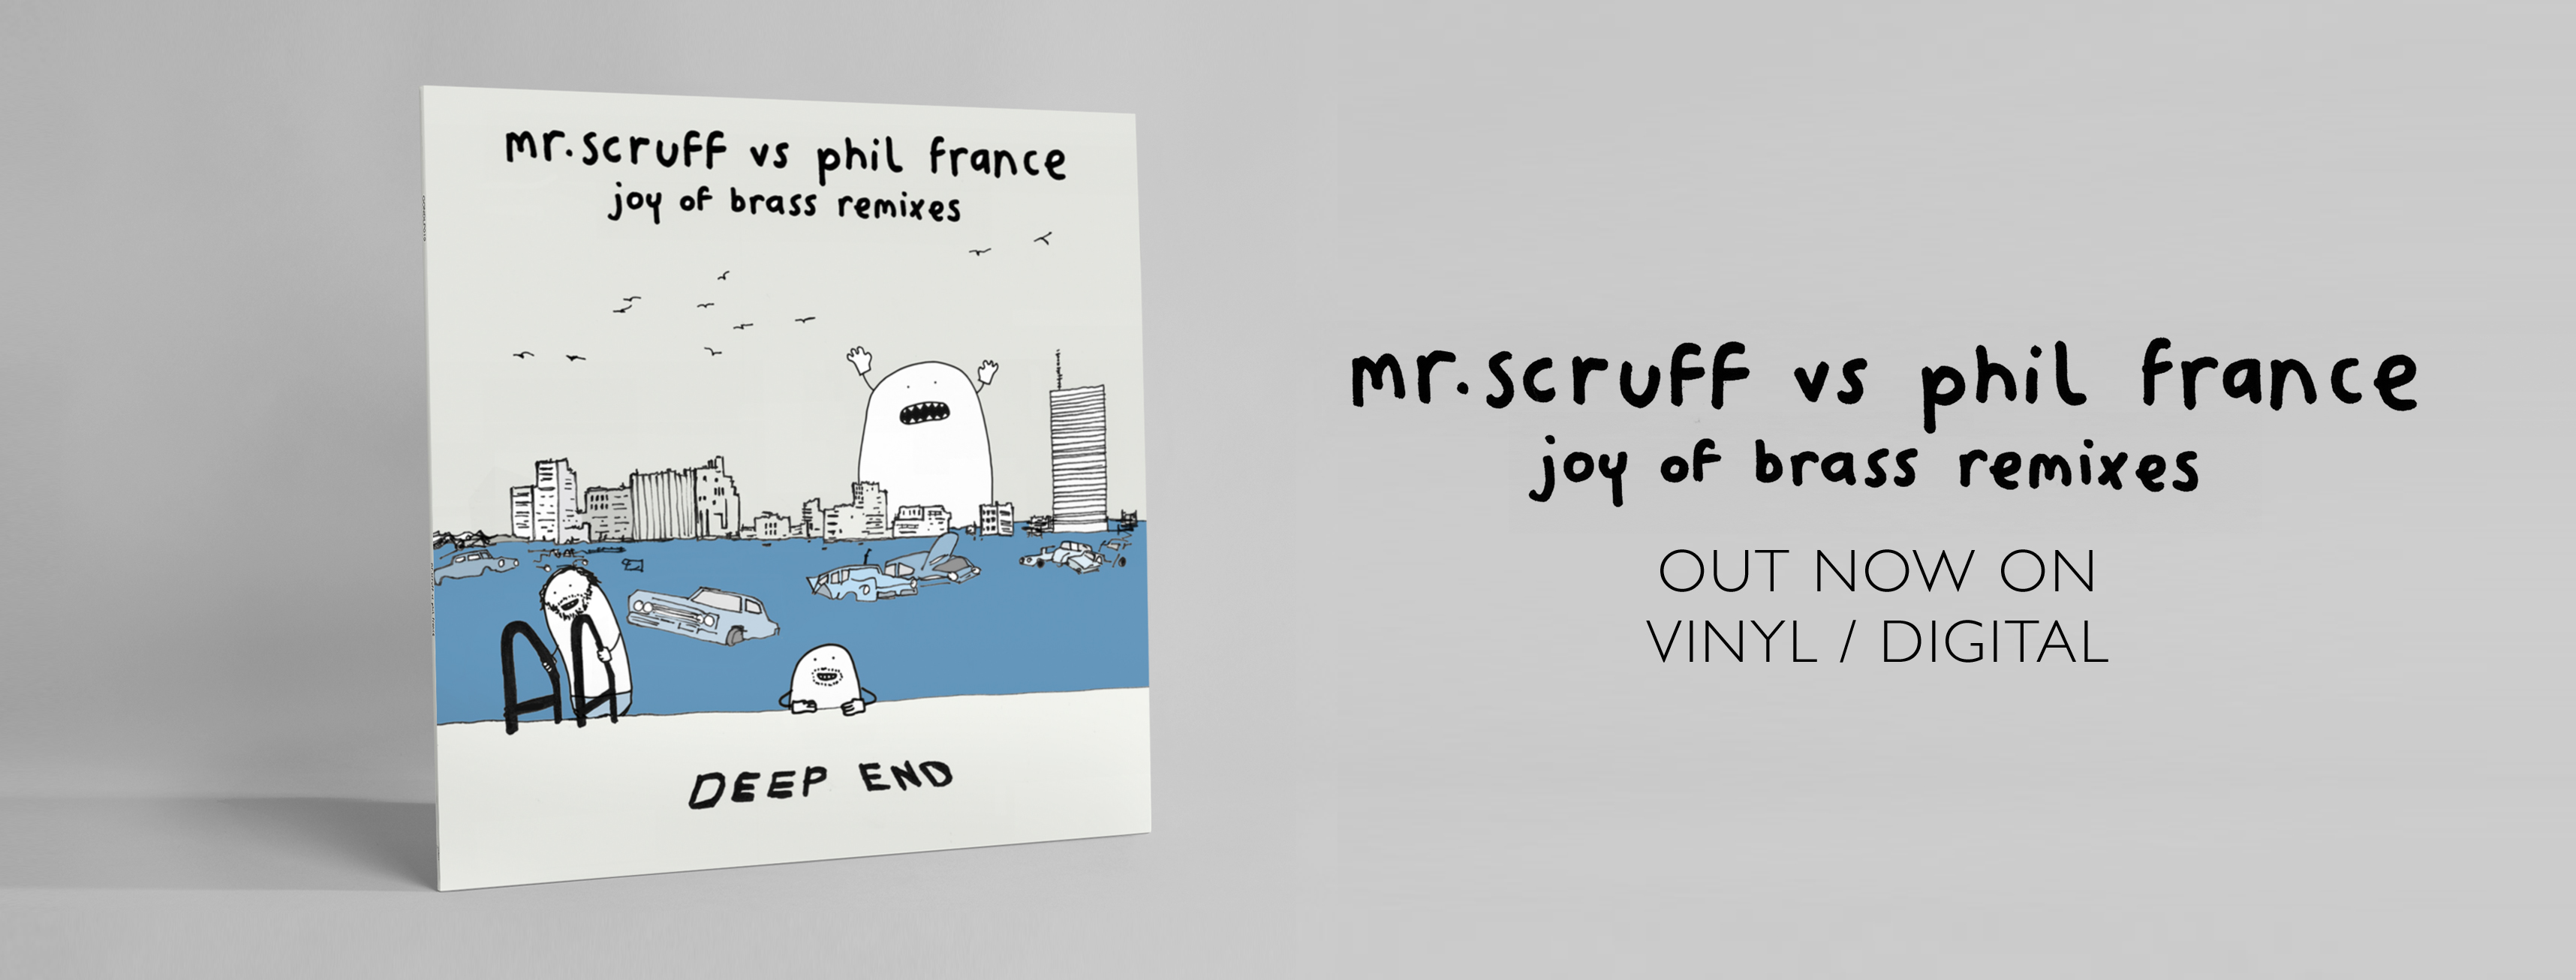 Mr. Scruff Vs Phil France Joy of Brass (Facebook Banner) OUT NOW